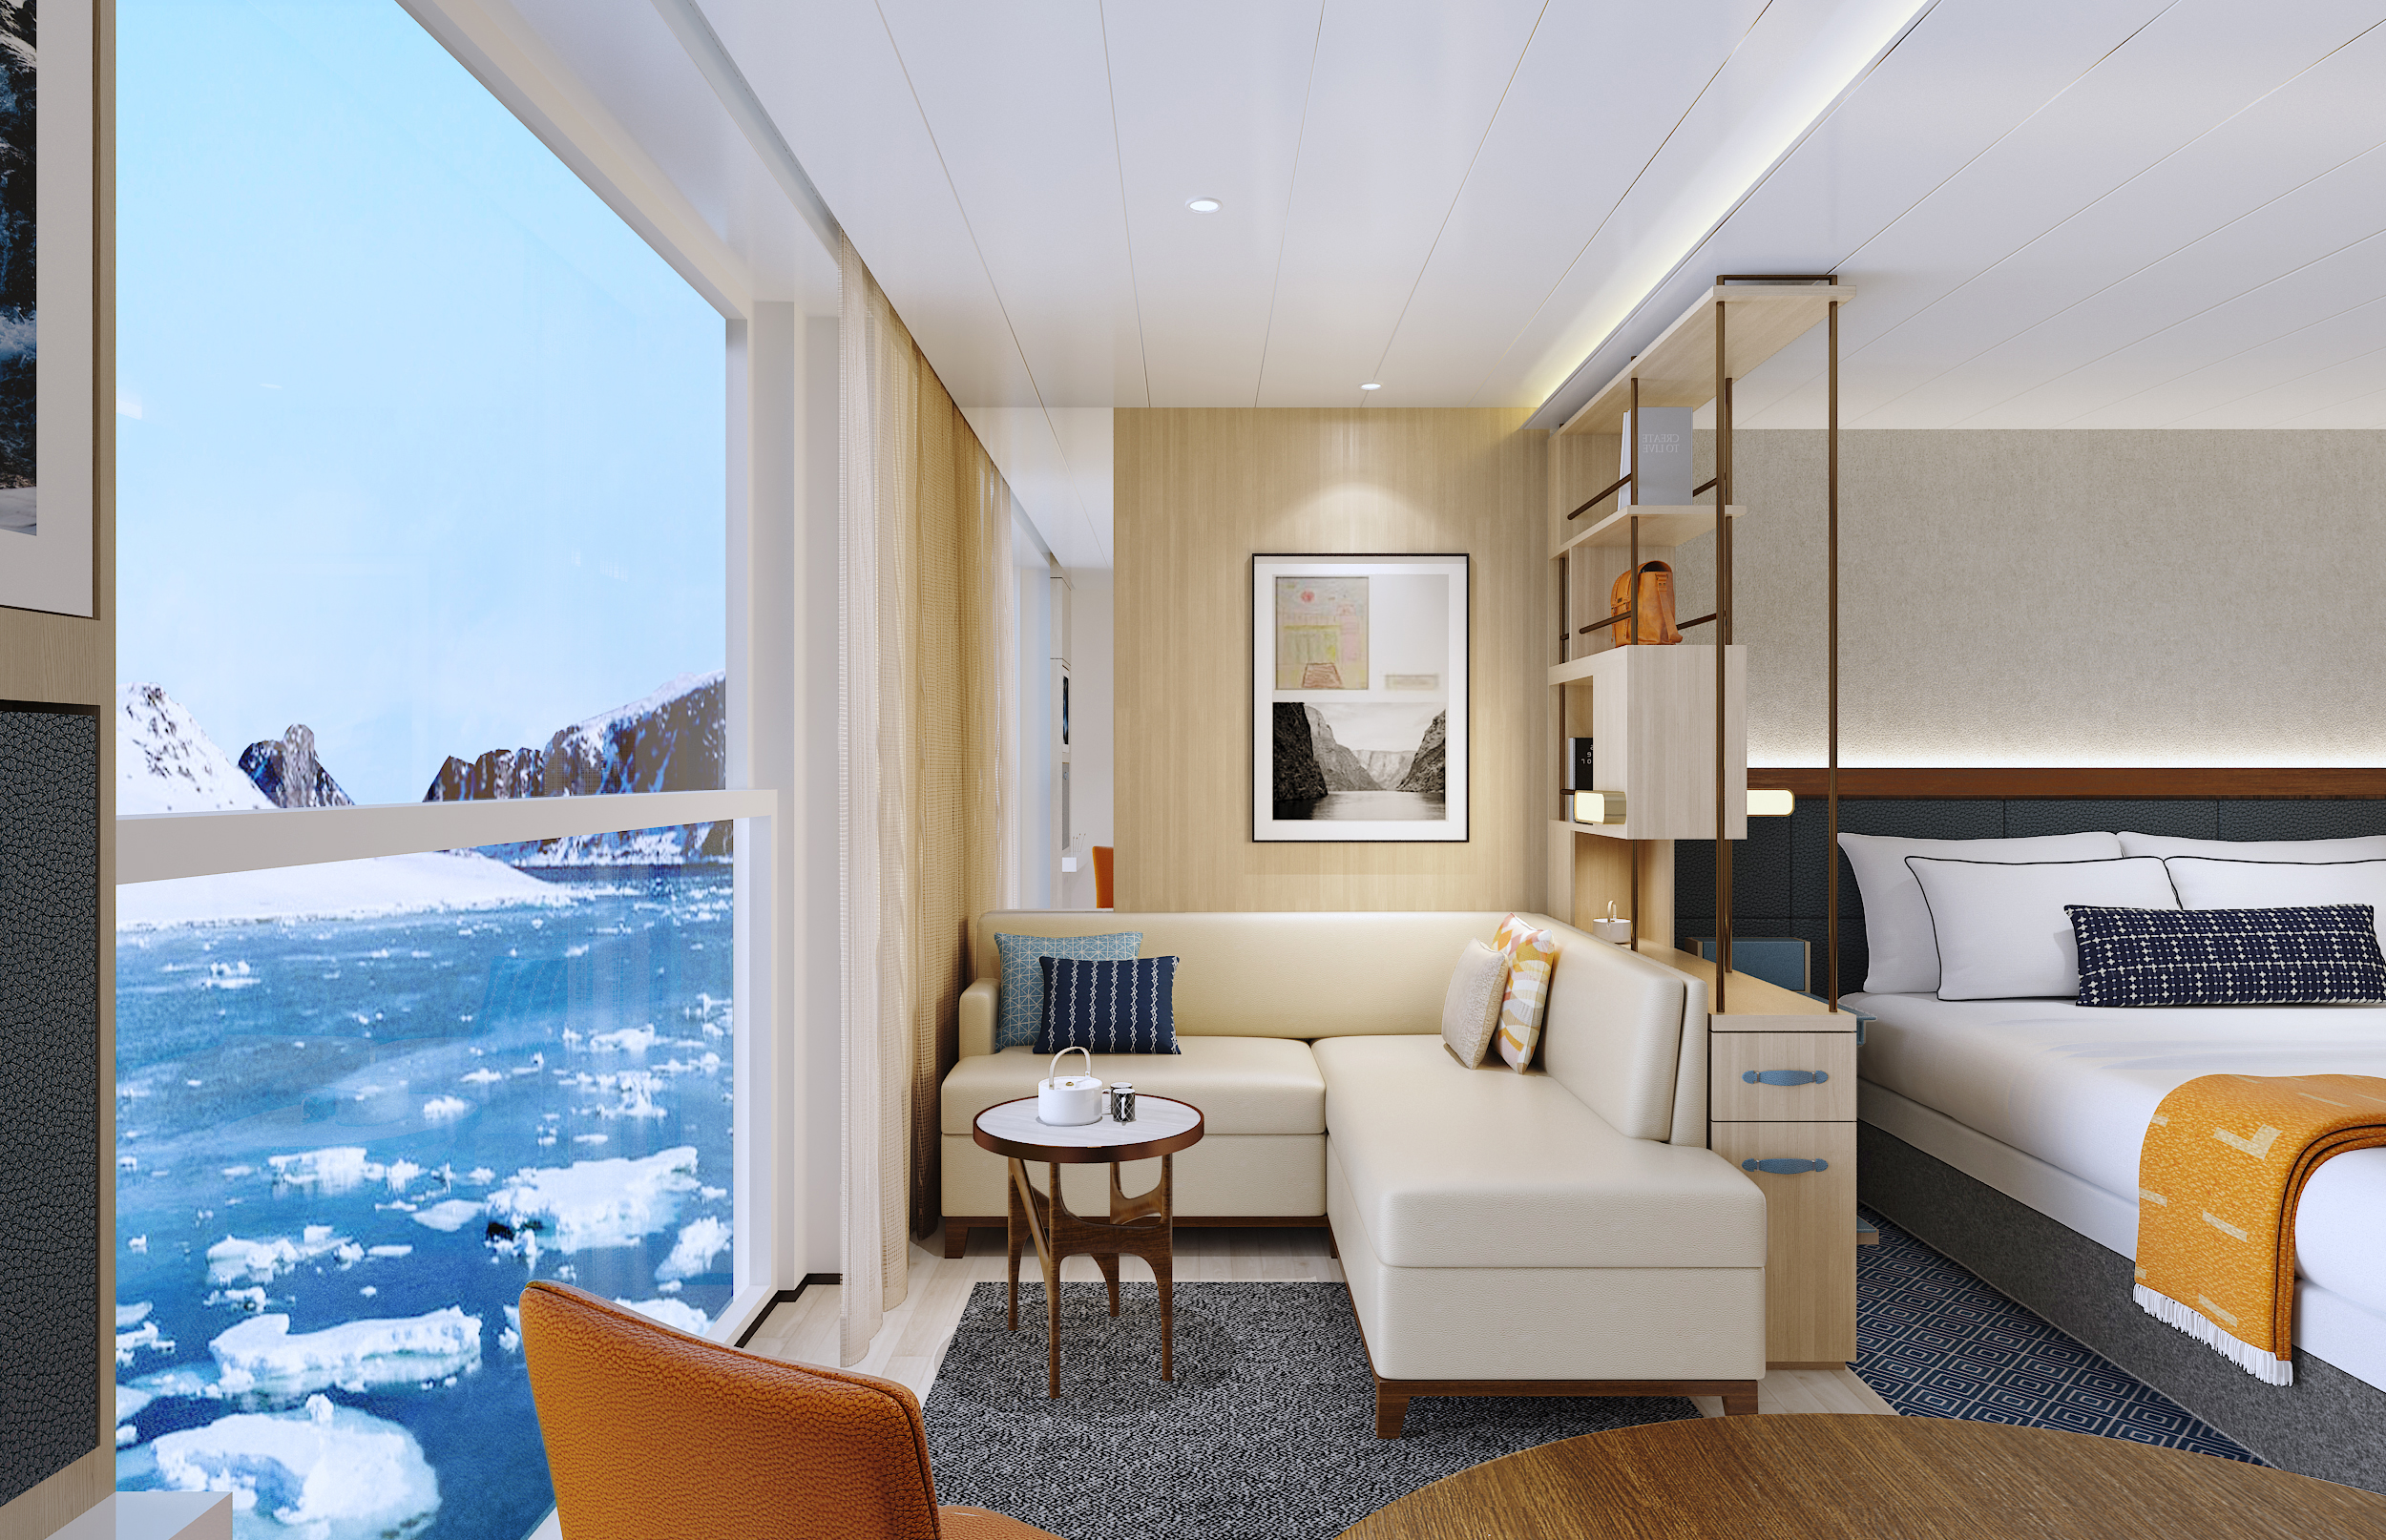 Photos: See Inside the New Cruise Ships Heading for Great ...